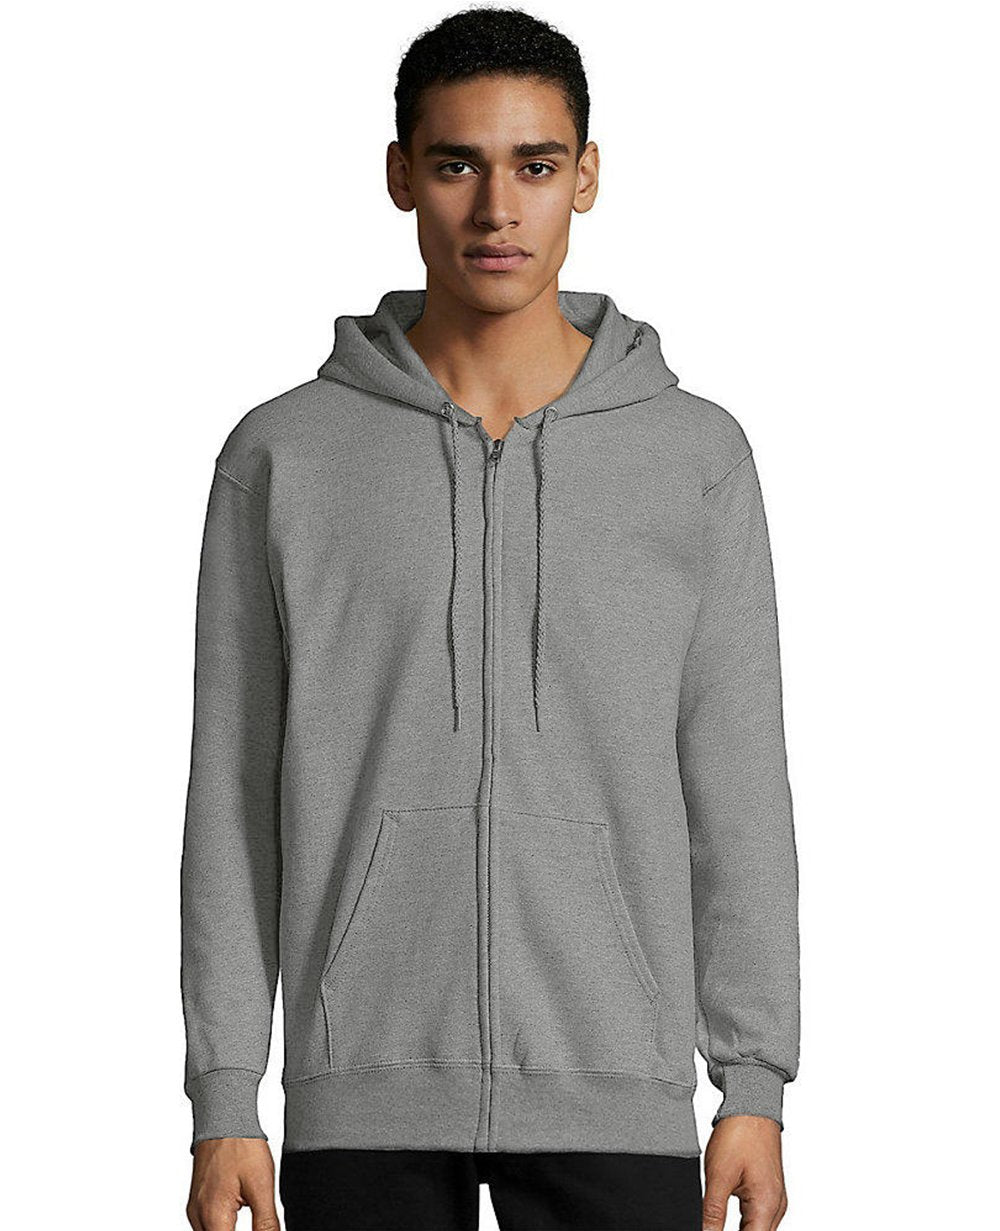 Zip-up Hoodie in Light Steel